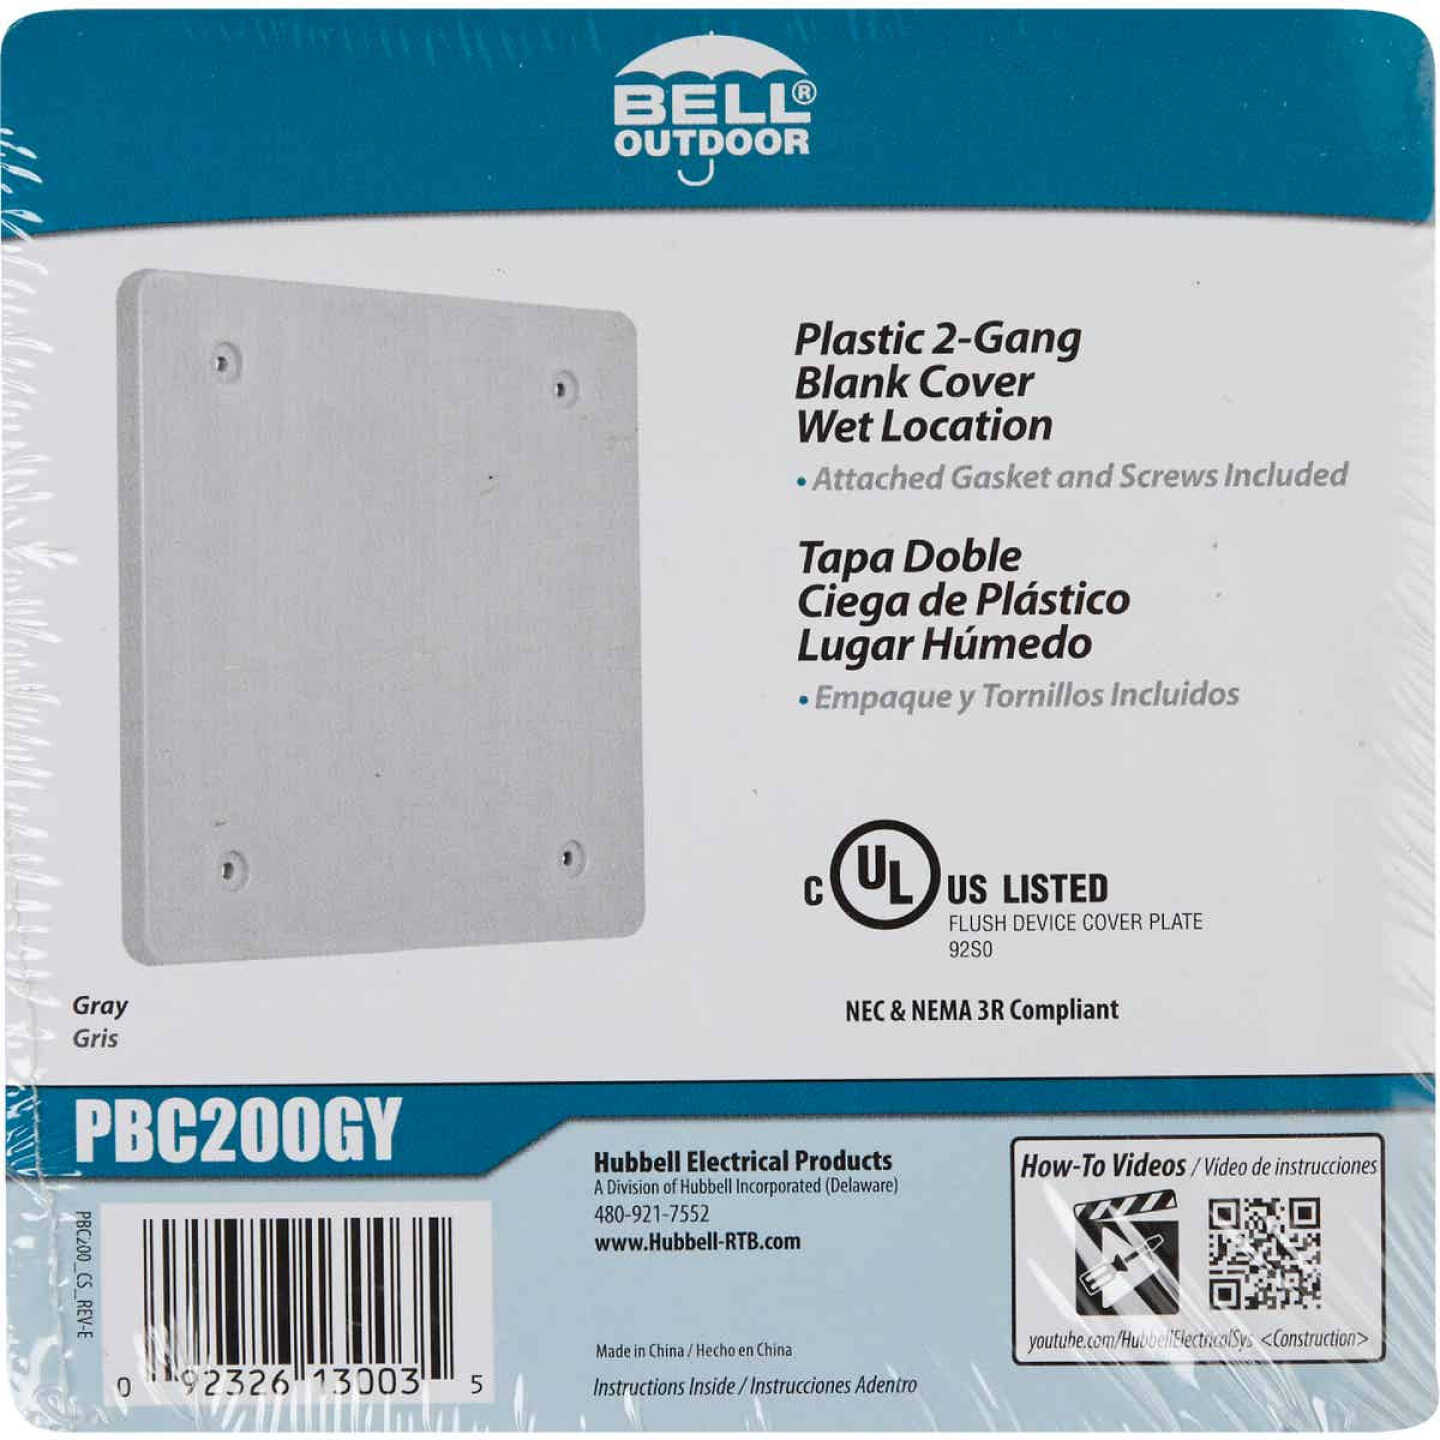 Bell 2-Gang Blank Square Polycarbonate Gray Weatherproof Outdoor Box Cover Image 2